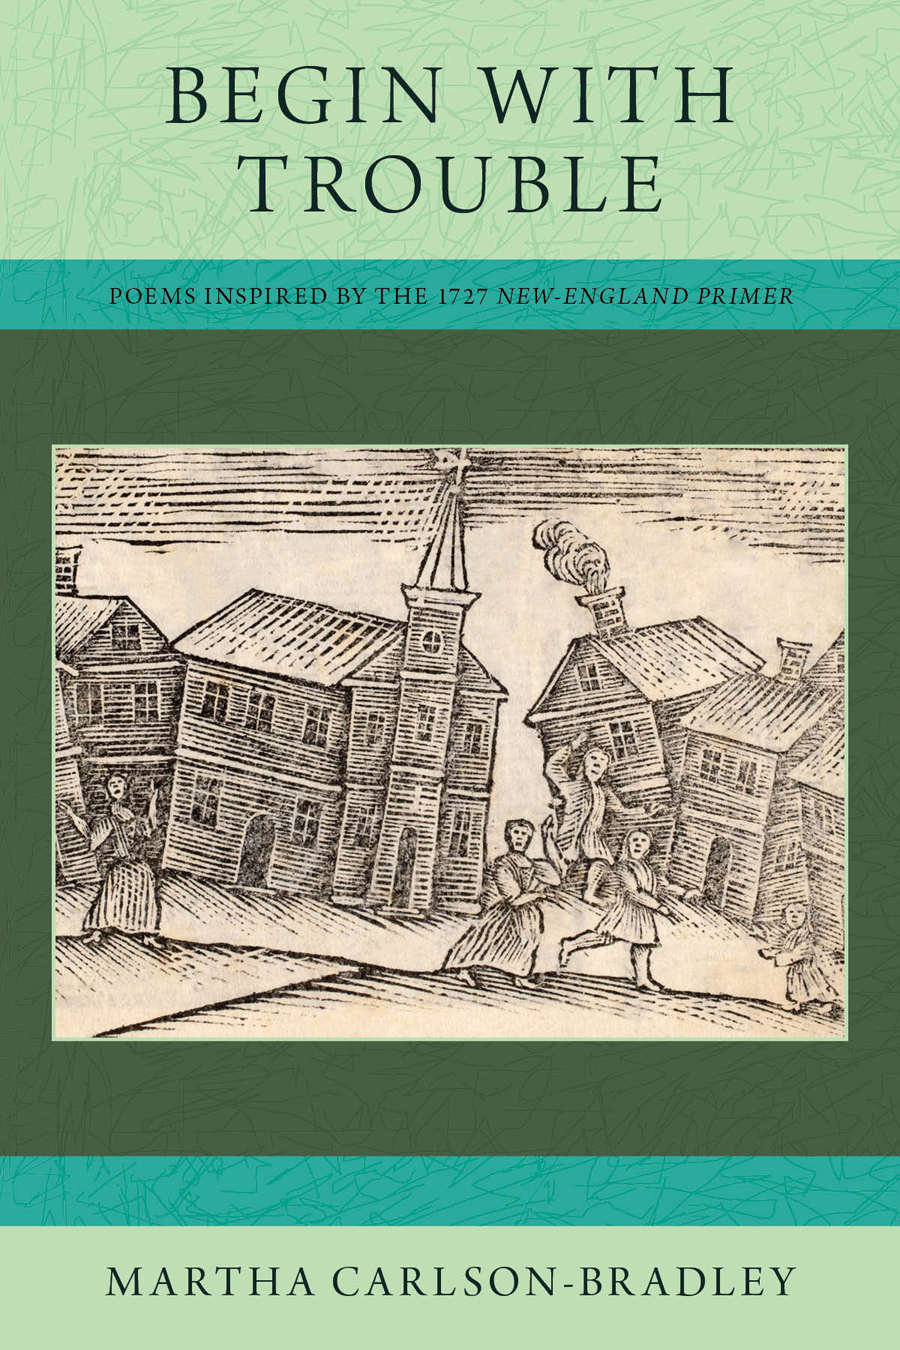 Begin with Trouble: Poems Inspired by the 1727 New-England Primer